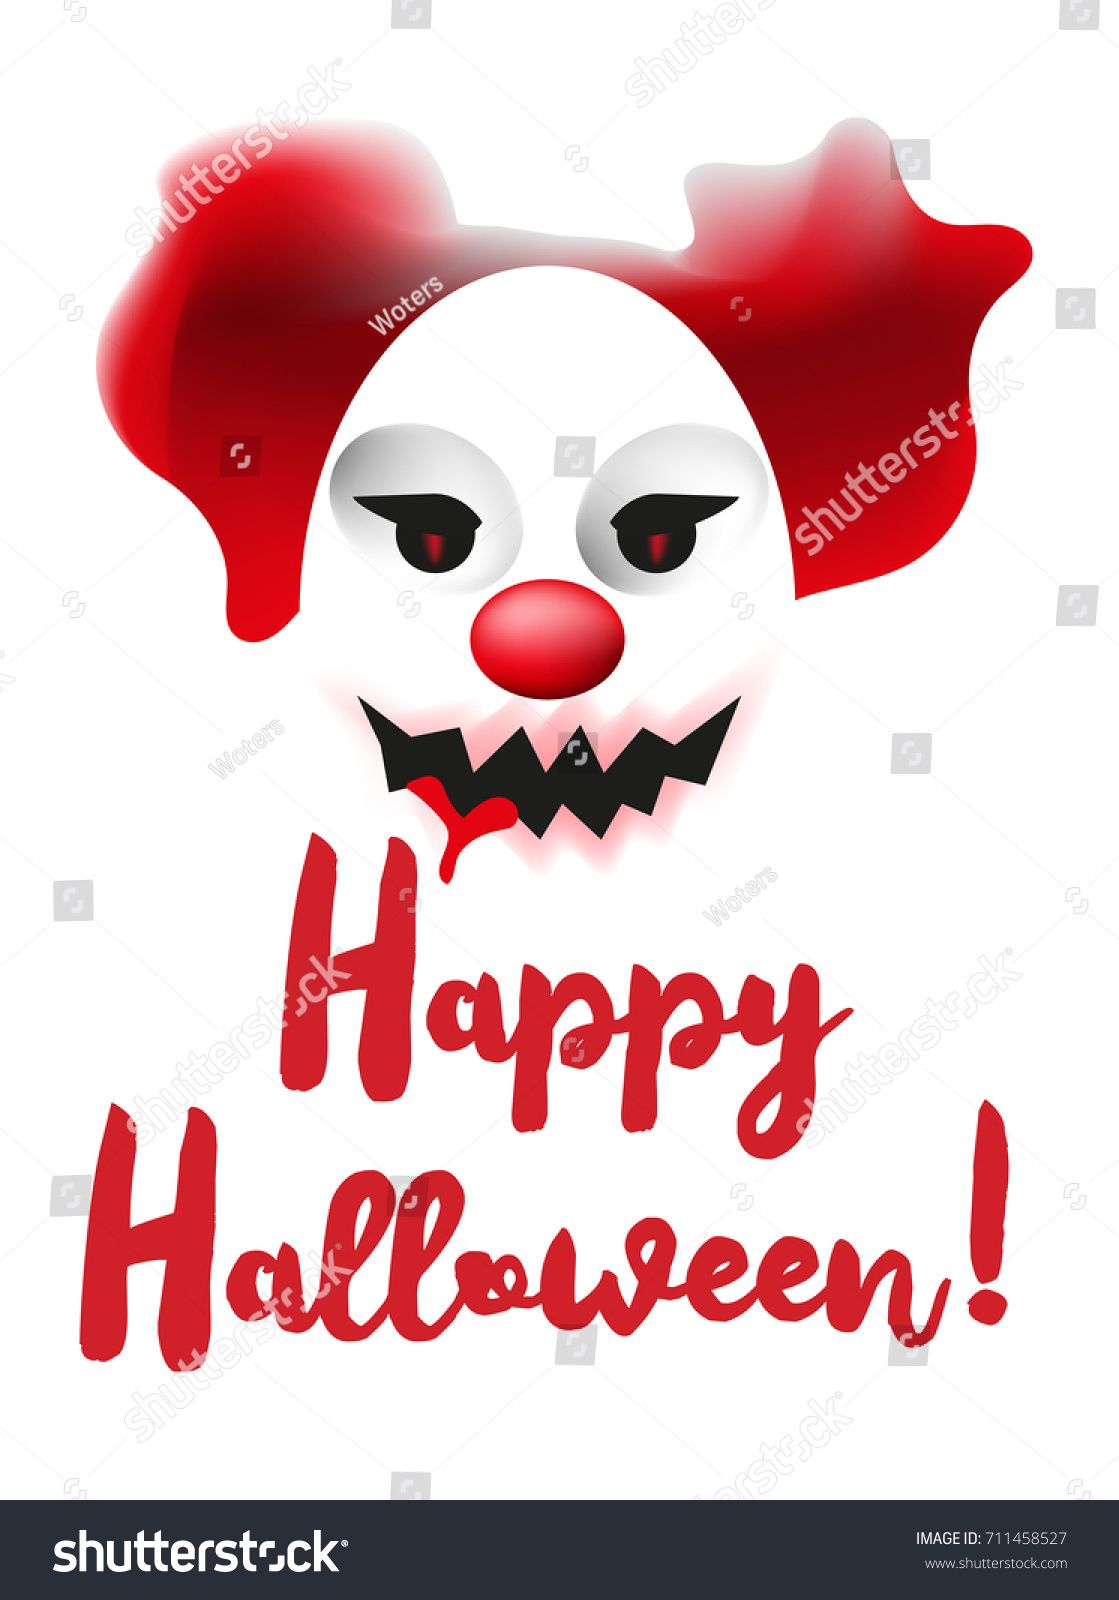 Happy Halloween vector poster. Greeting card template